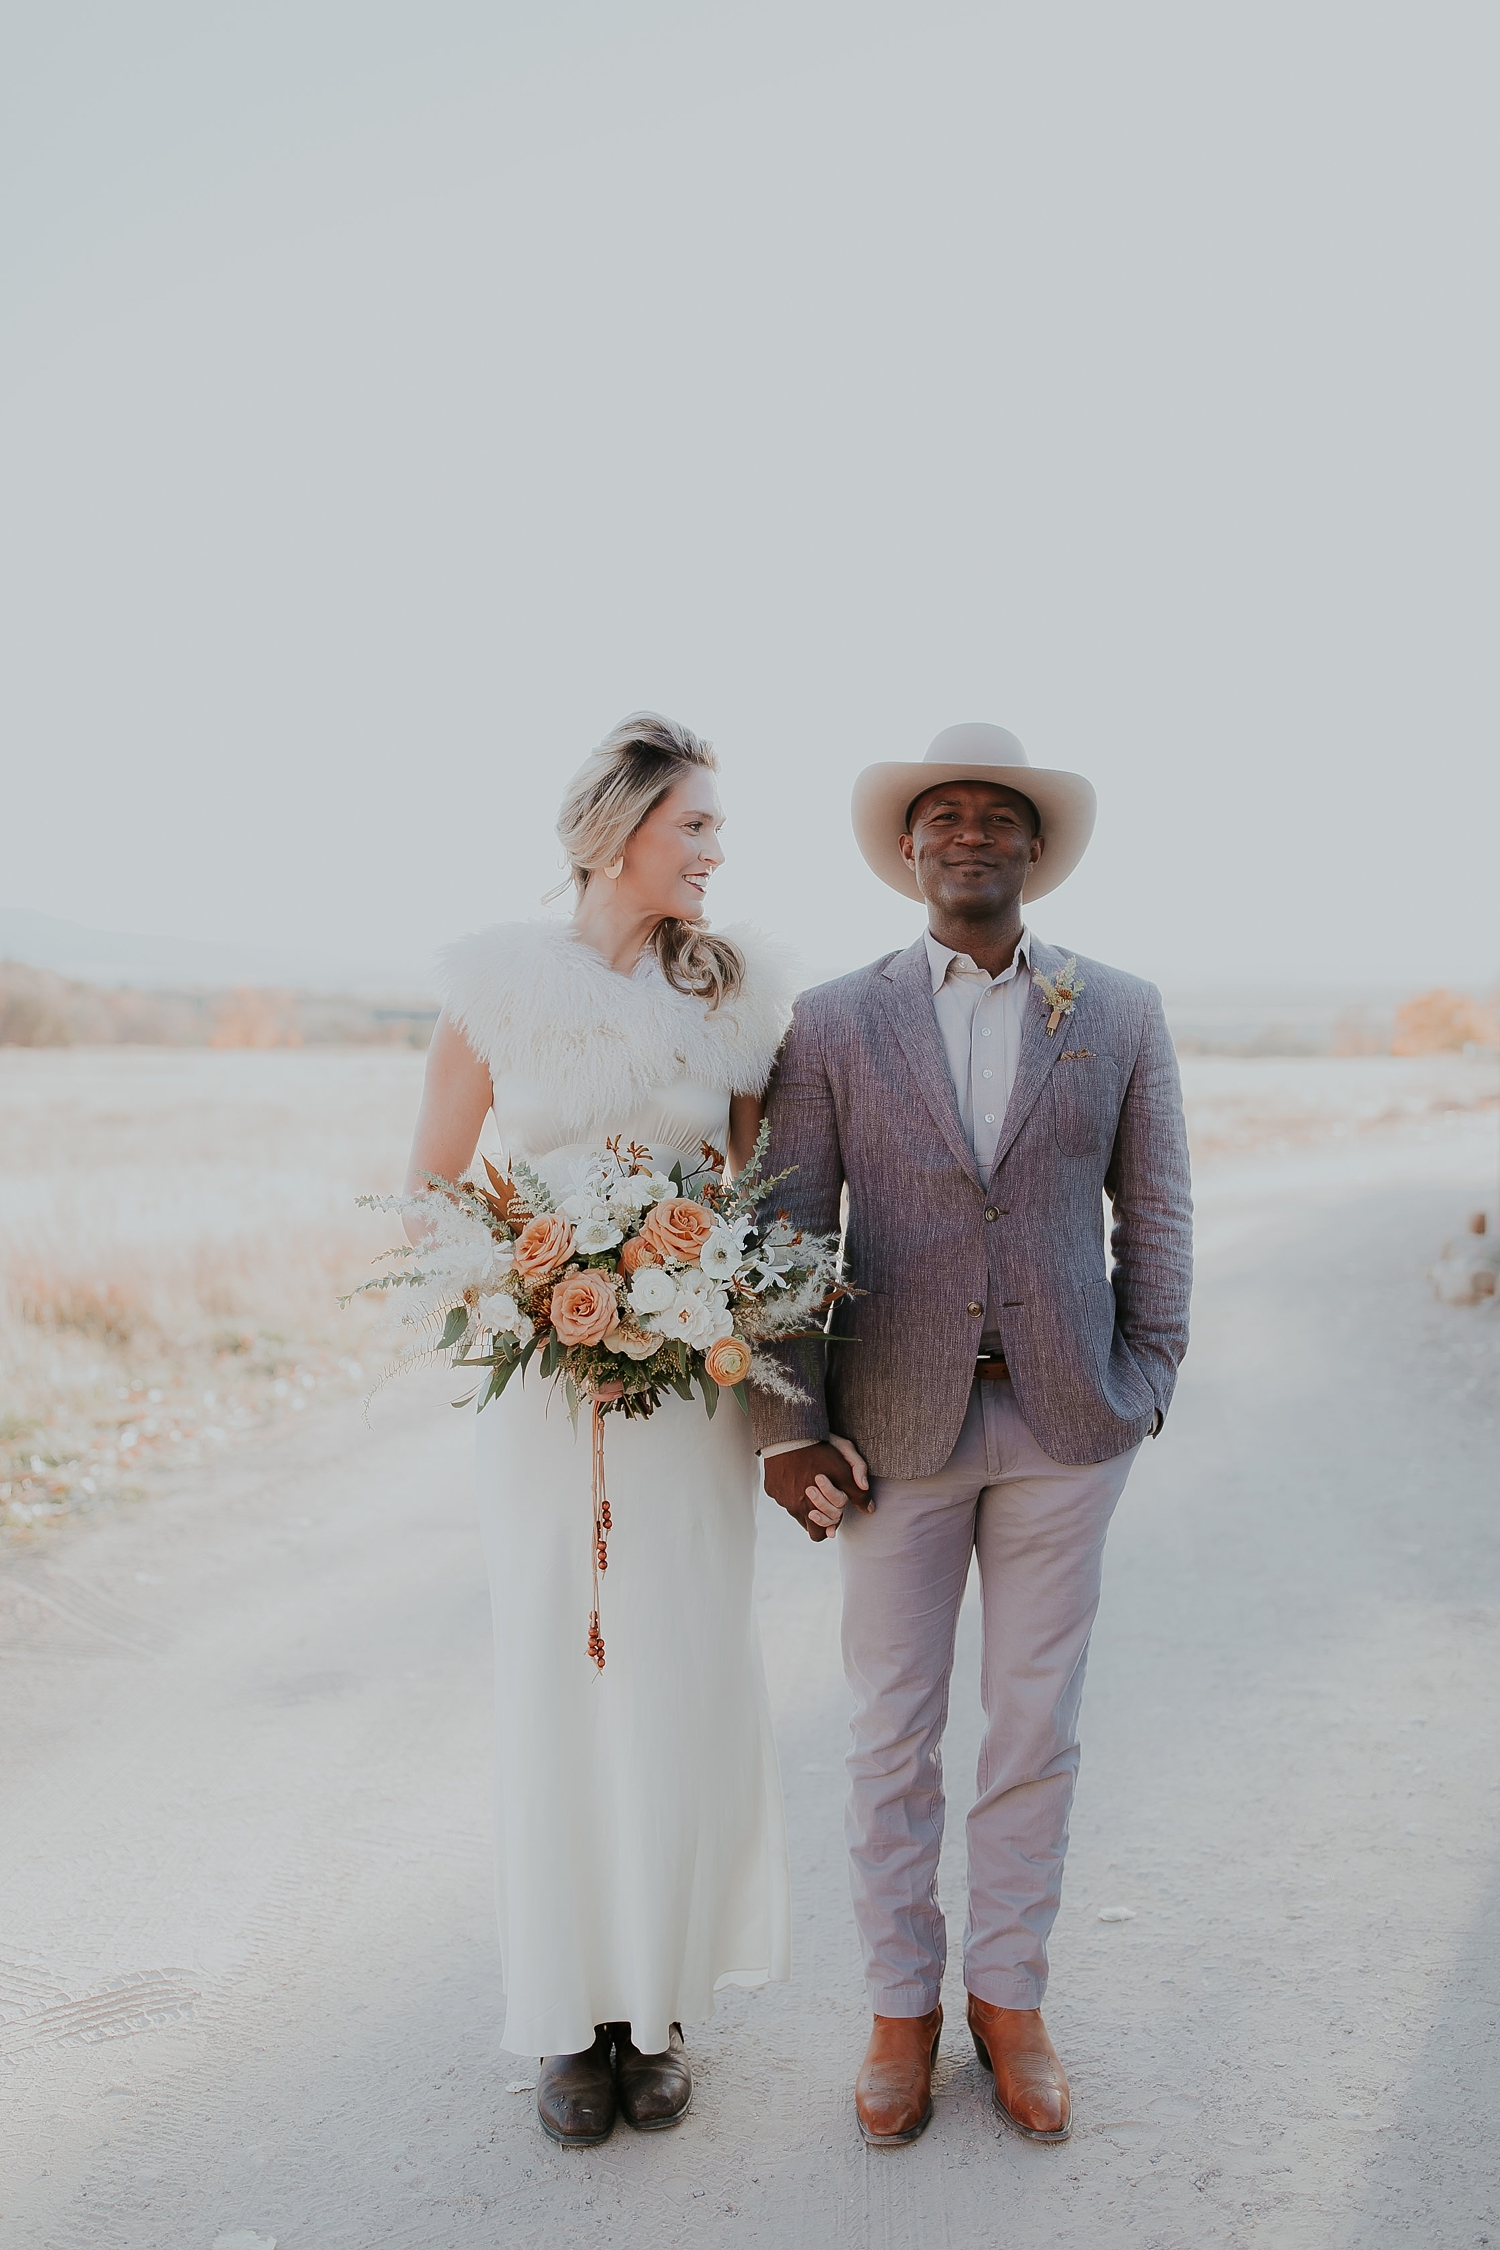 Alicia+lucia+photography+-+albuquerque+wedding+photographer+-+santa+fe+wedding+photography+-+new+mexico+wedding+photographer+-+new+mexico+ghost+ranch+wedding+-+styled+wedding+shoot_0050.jpg